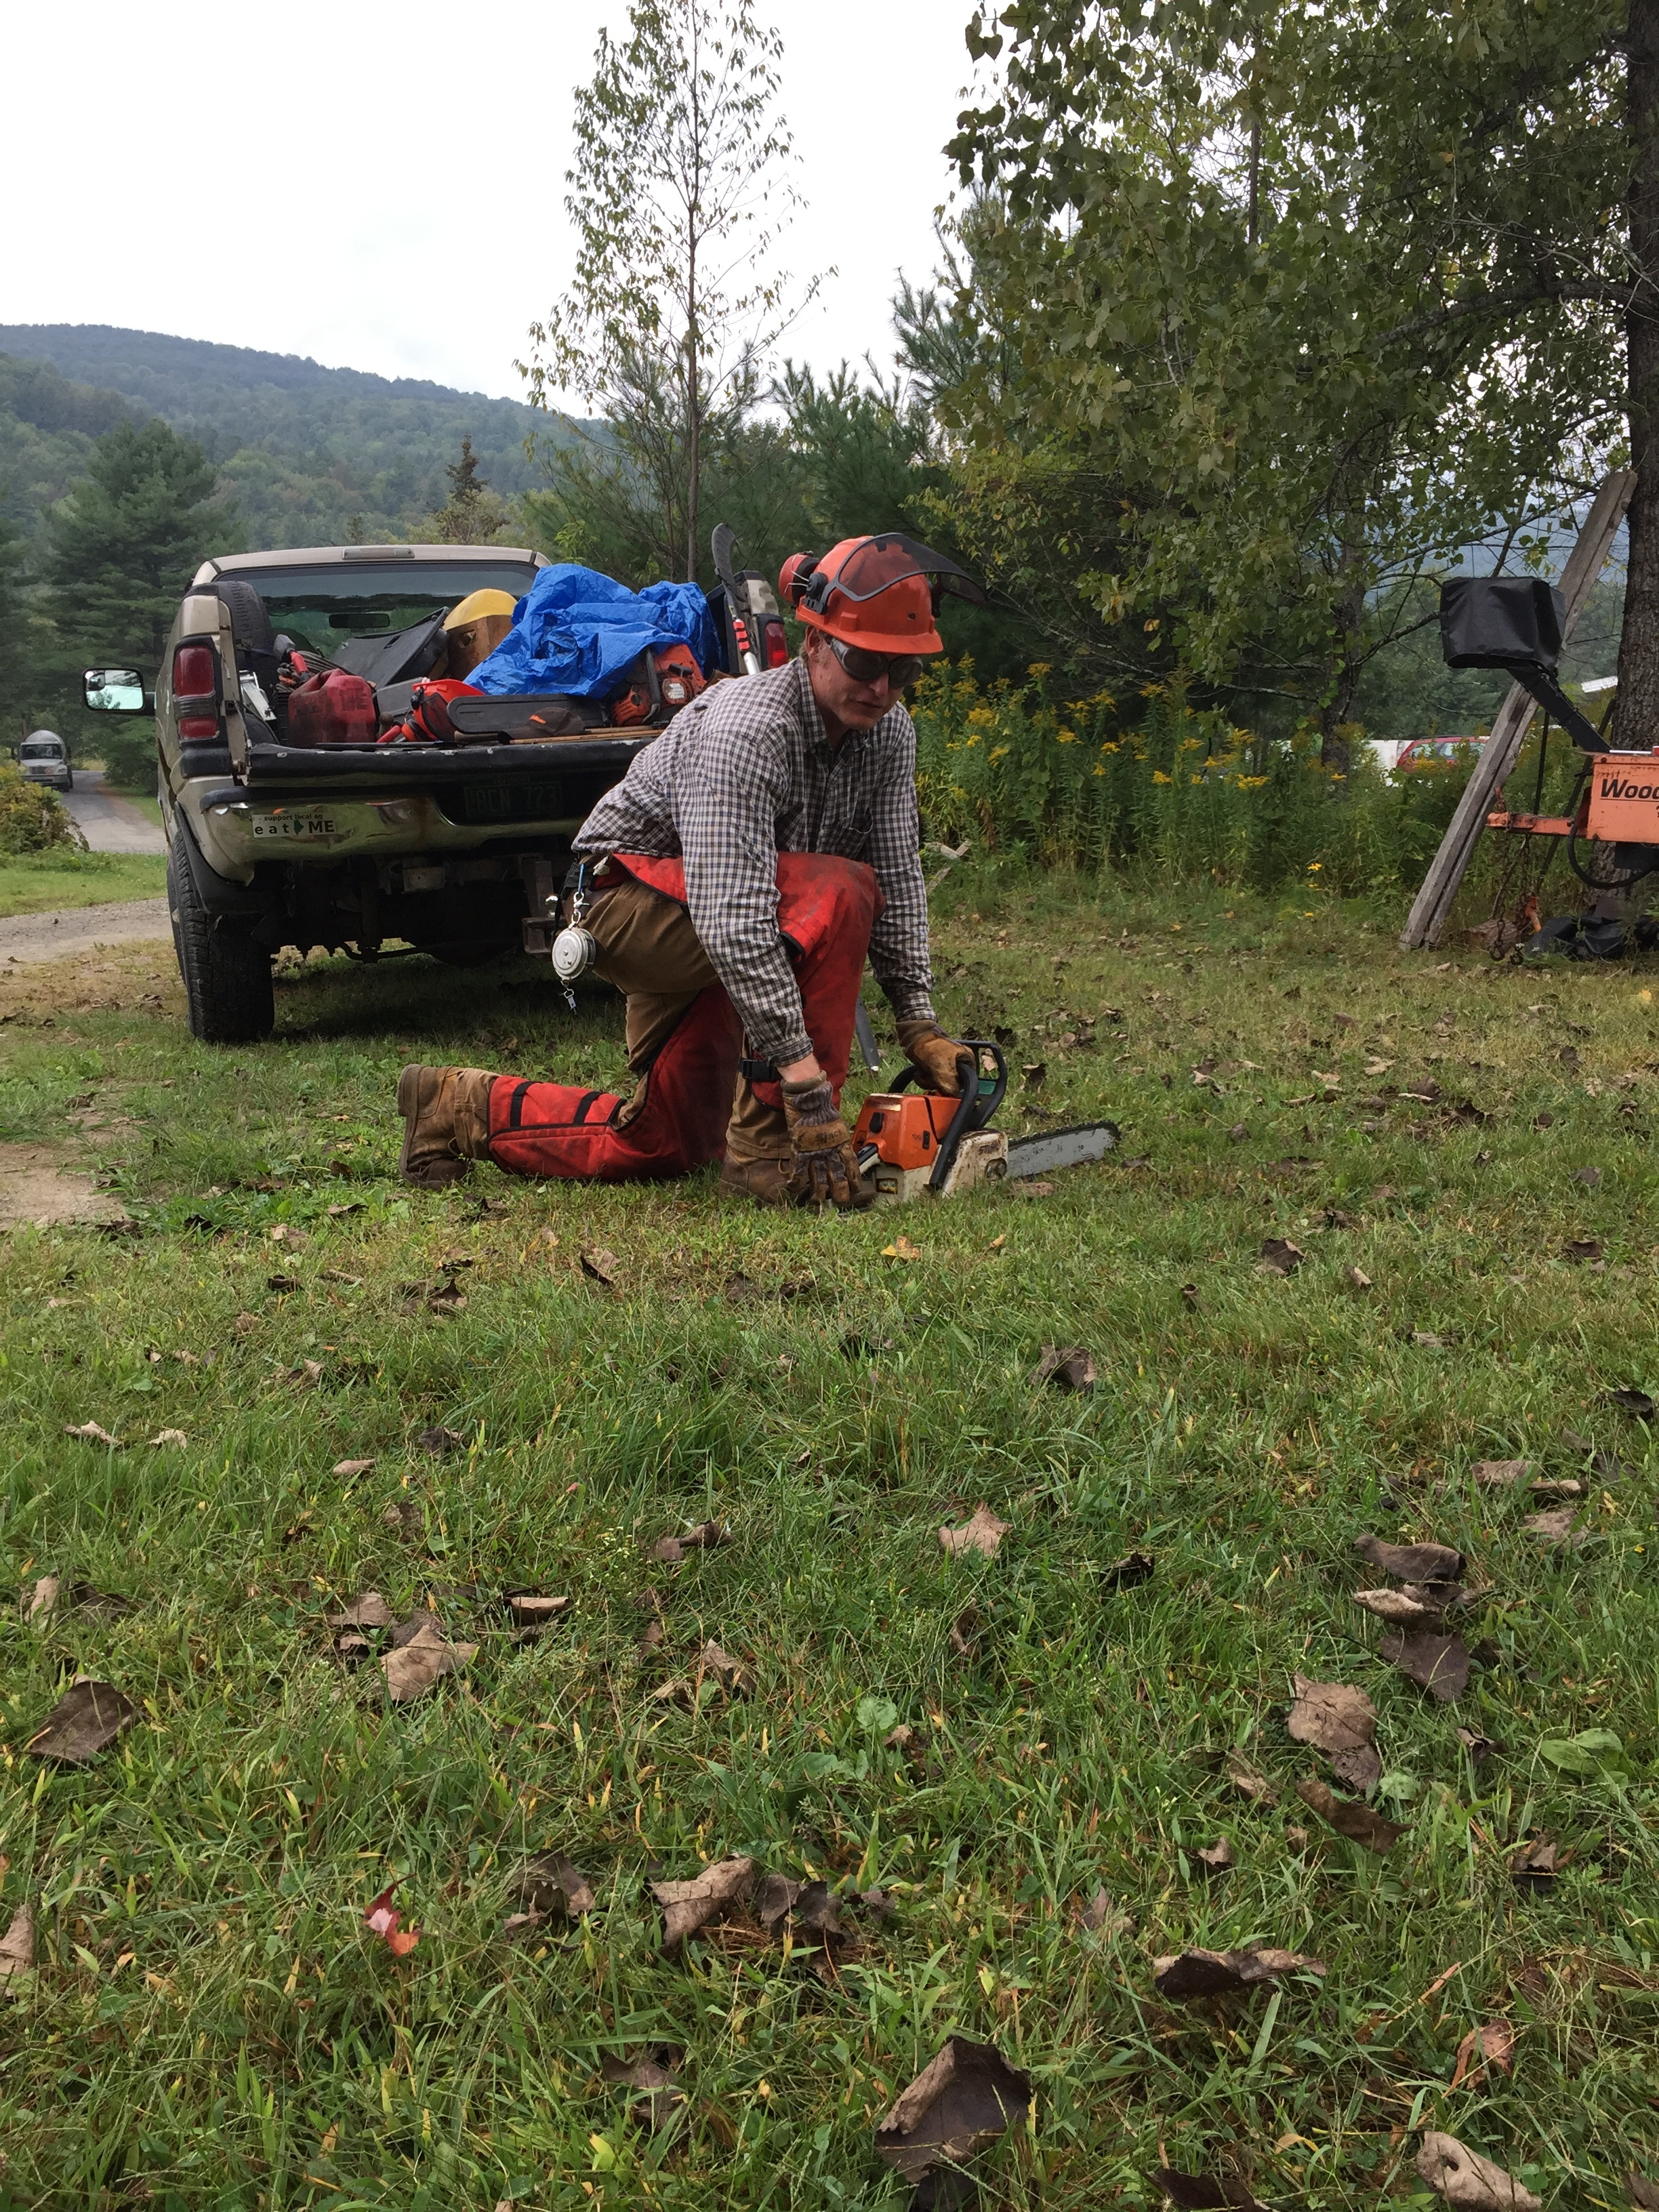 NZ gives instruction on necessary Chainsaw safety before cutting a single piece of lumber.